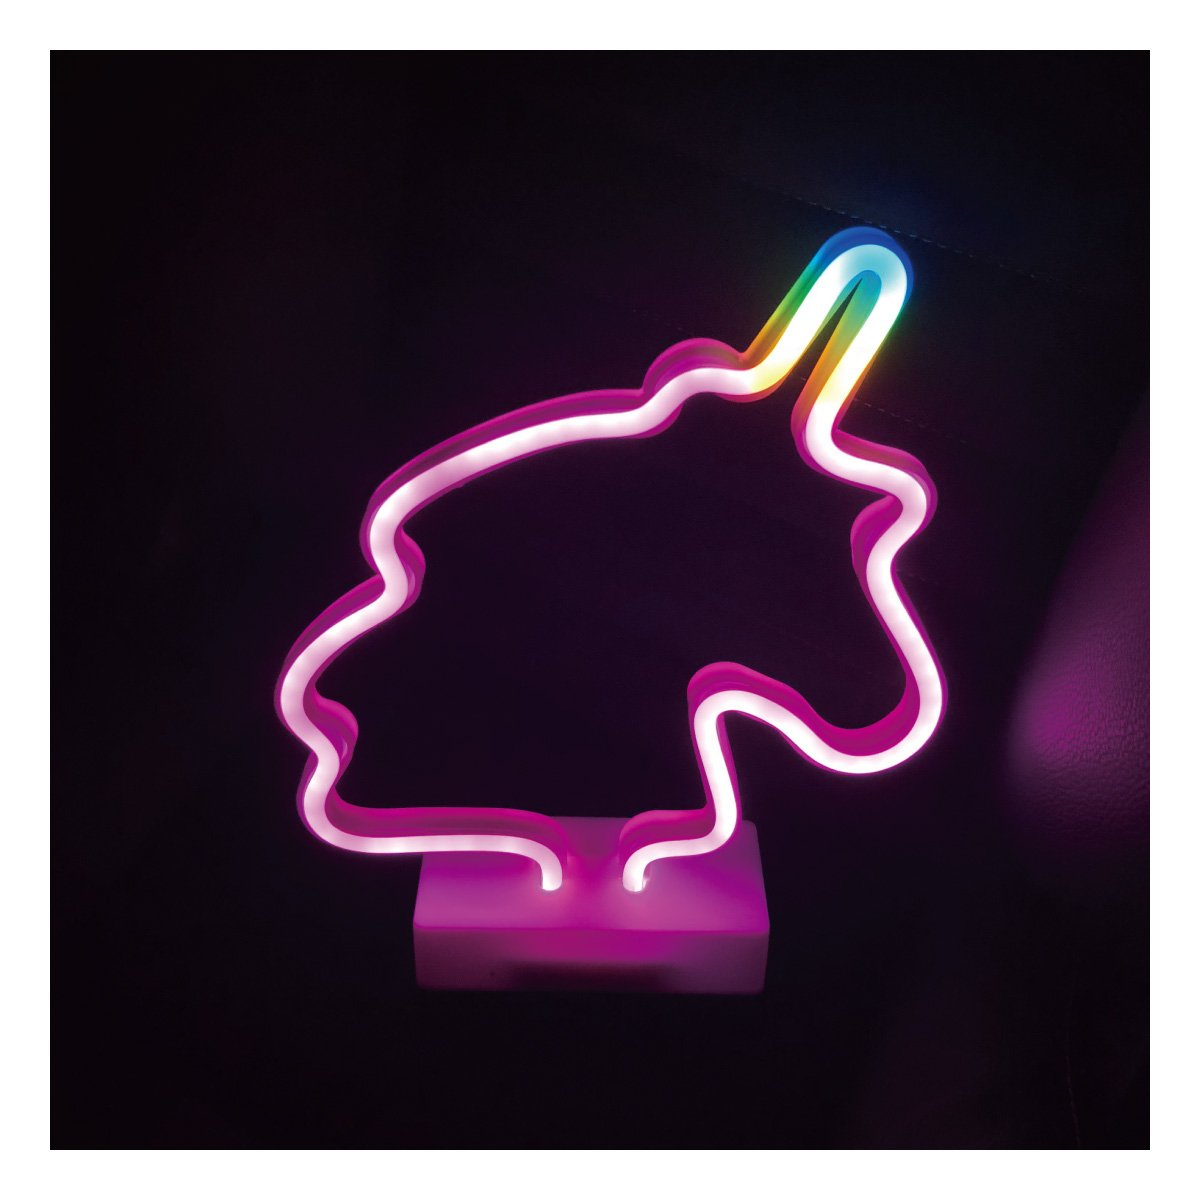 YiiY Neon Sign Desk Table Lamp/LED Figurine Lamps Lights Battery Operated for Nursery,Table Decorations,Kids' Room,Living Room,Bedroom (Unicorn-pink)